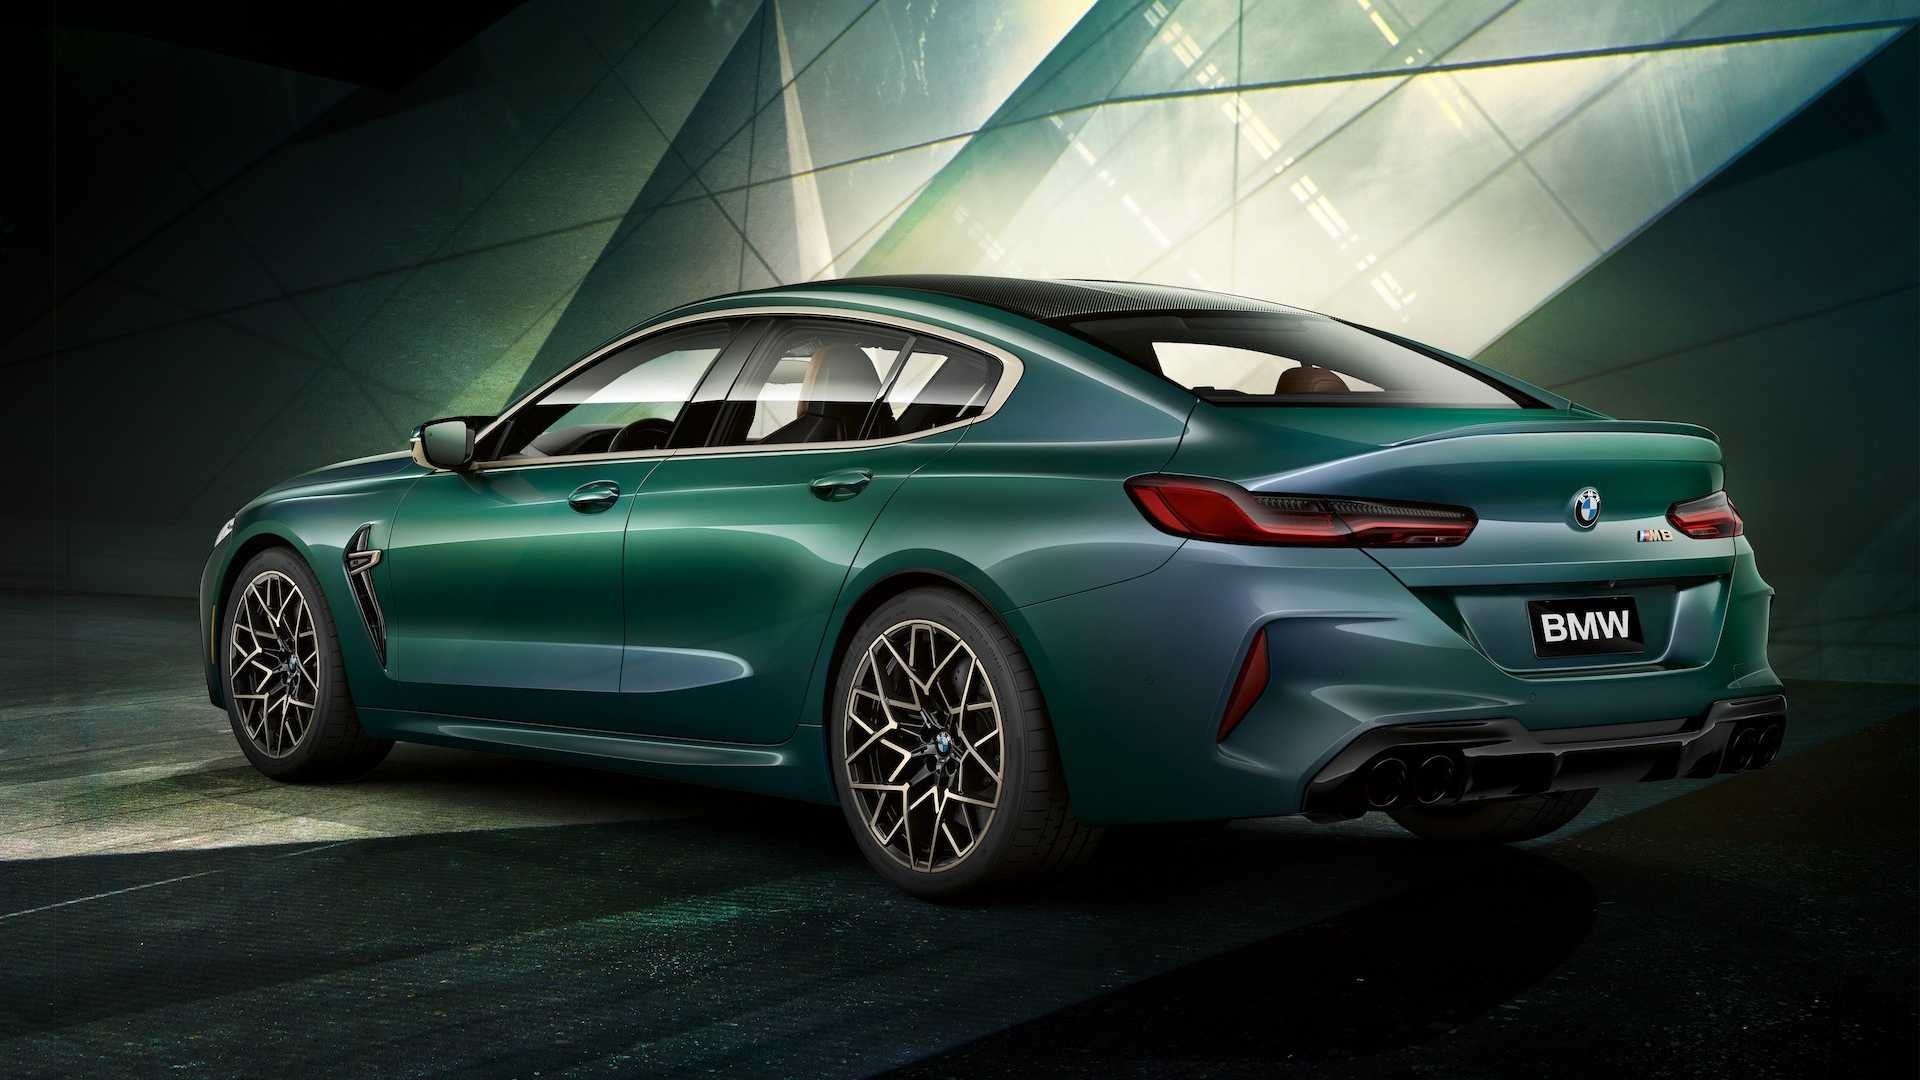 2020-bmw-m8-gran-coupe-competition-4